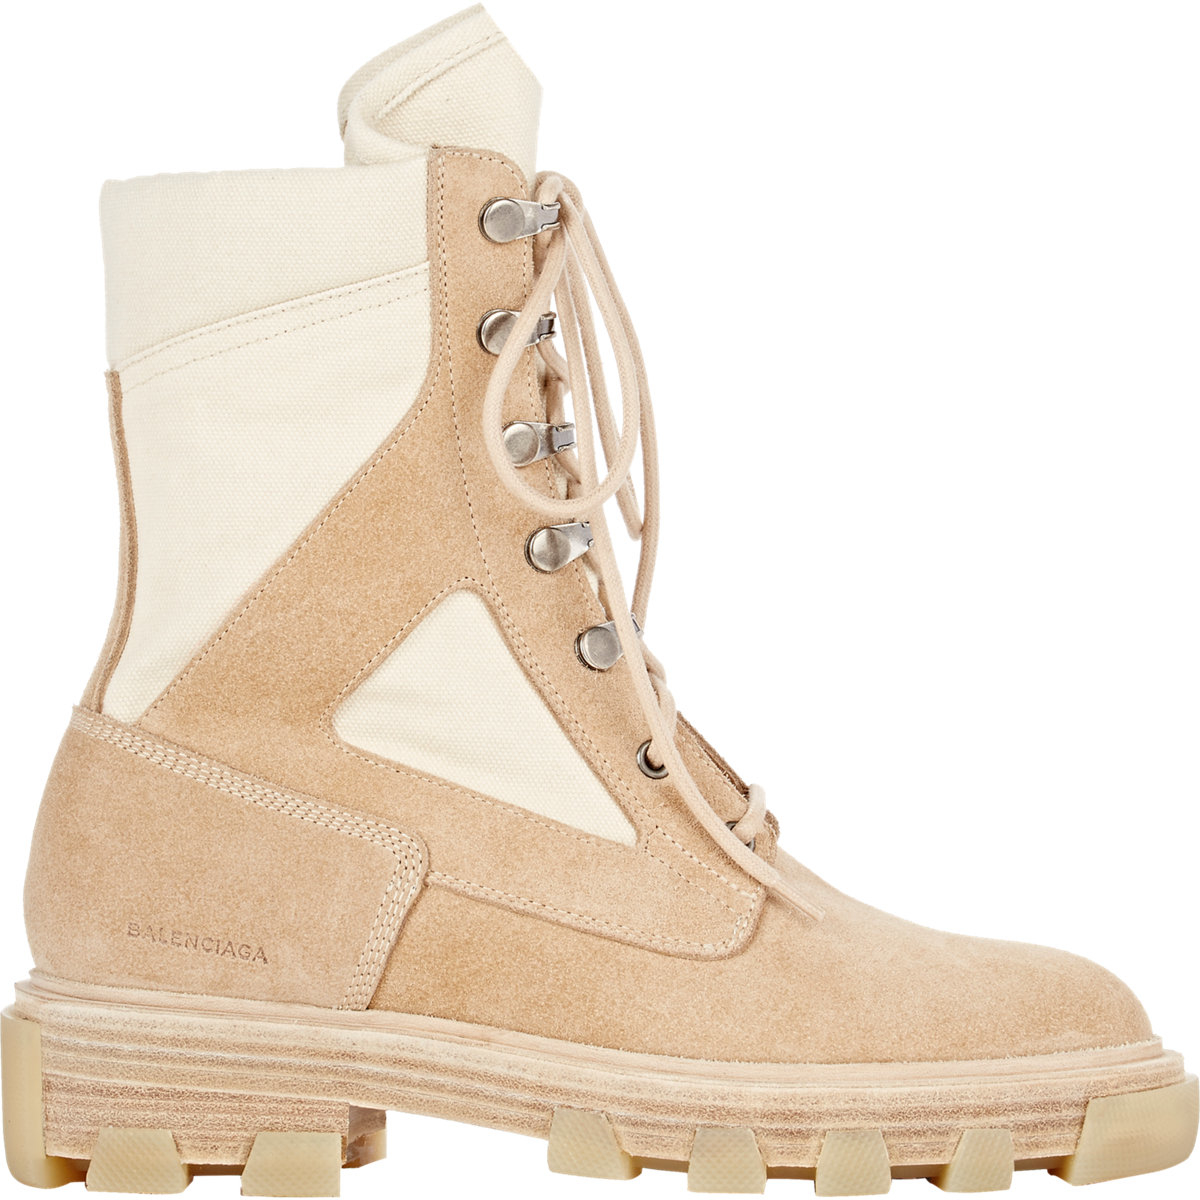 b5d3f6708 Balenciaga Two-Toned Suede and Canvas Boots in Natural - Lyst